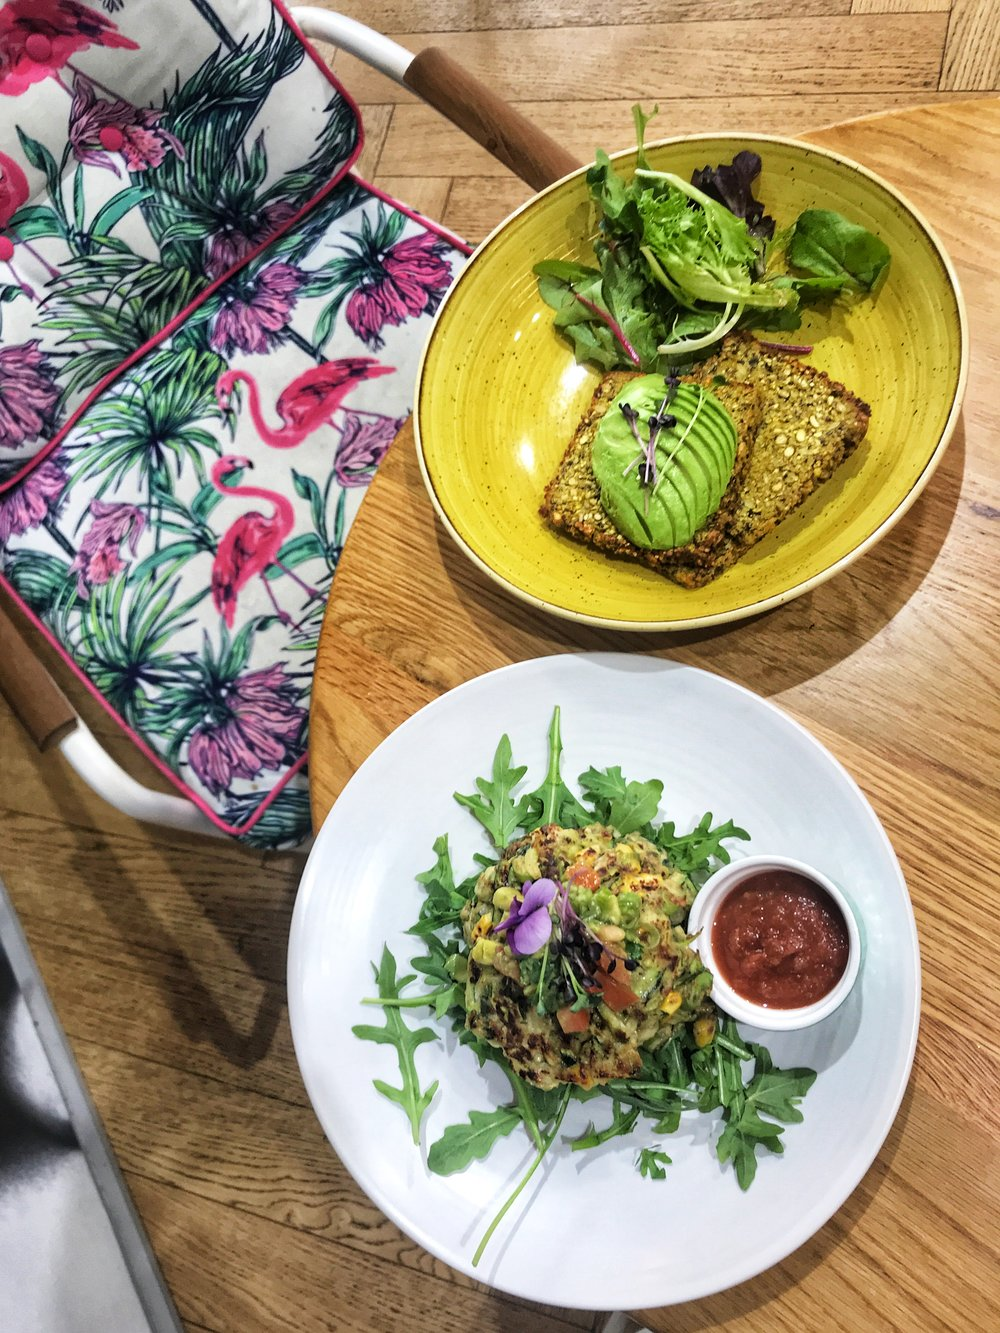 Pumpkin & Turmeric Sprouted Toast with Avocado and the Zucchini & Corn Fritters